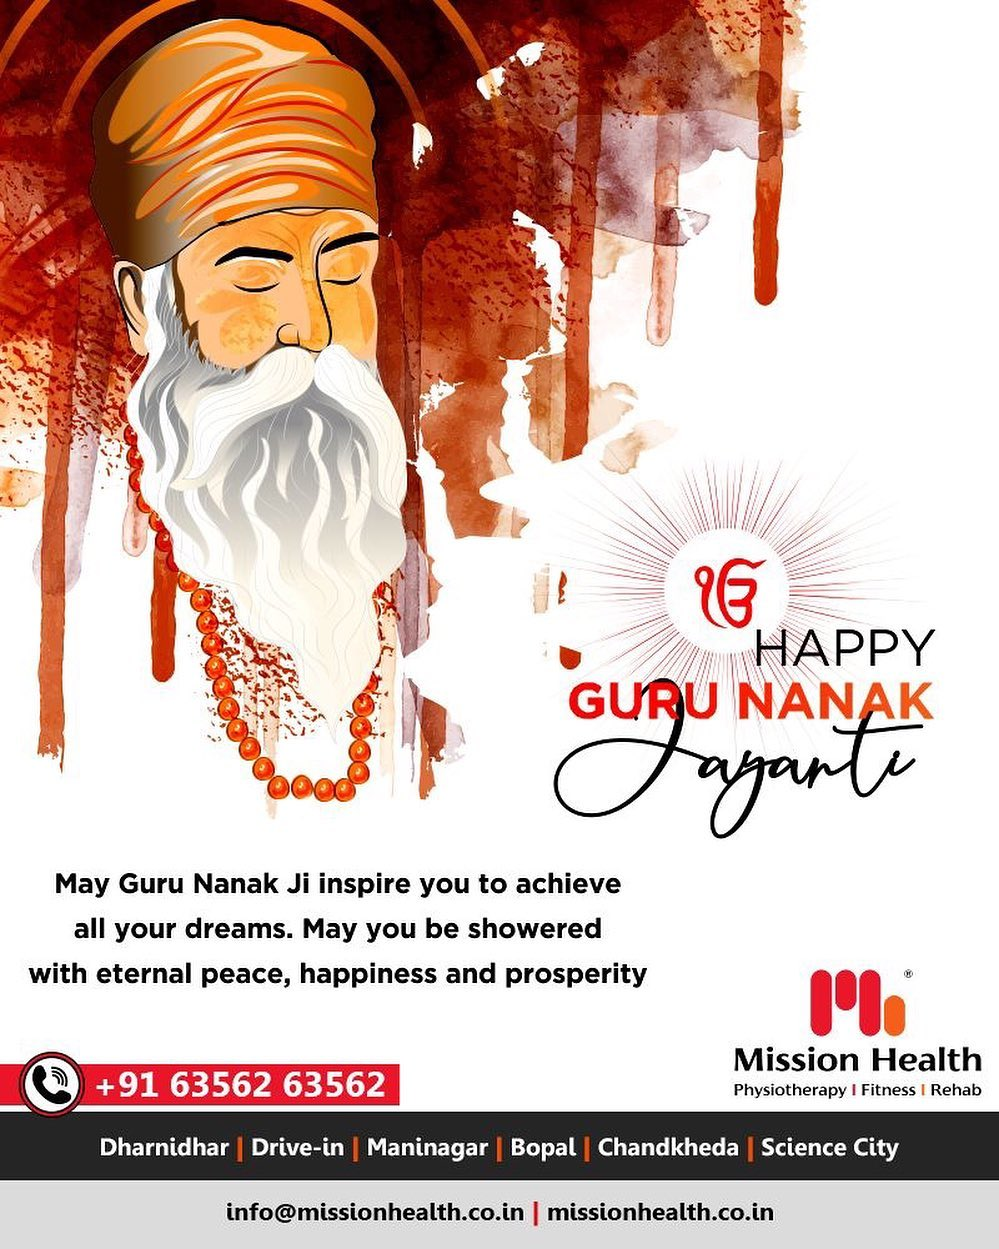 May Guru Nanak Ji inspire you to achieve all your dreams. May you be showered with eternal peace, happiness, and prosperity.  #GuruNanakJayanti #GuruPurab #MissionHealth #MissionHealthIndia #MovementIsLife #AbilityClinic